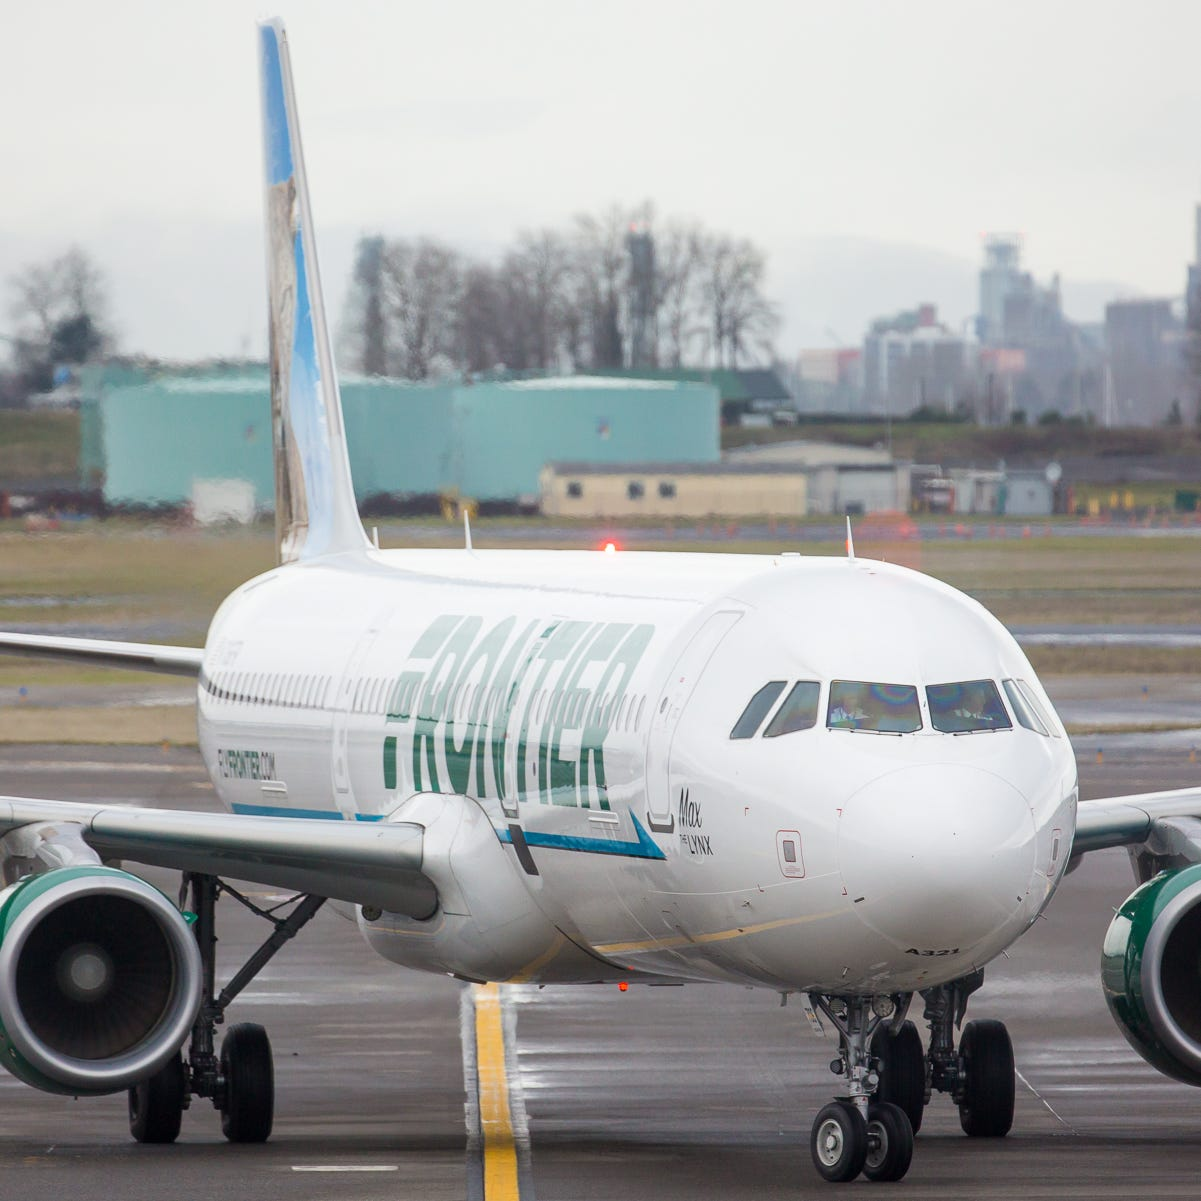 A Frontier Airlines Airbus A321 taxis to Gate D4 at Portland International Airport in December 2018.